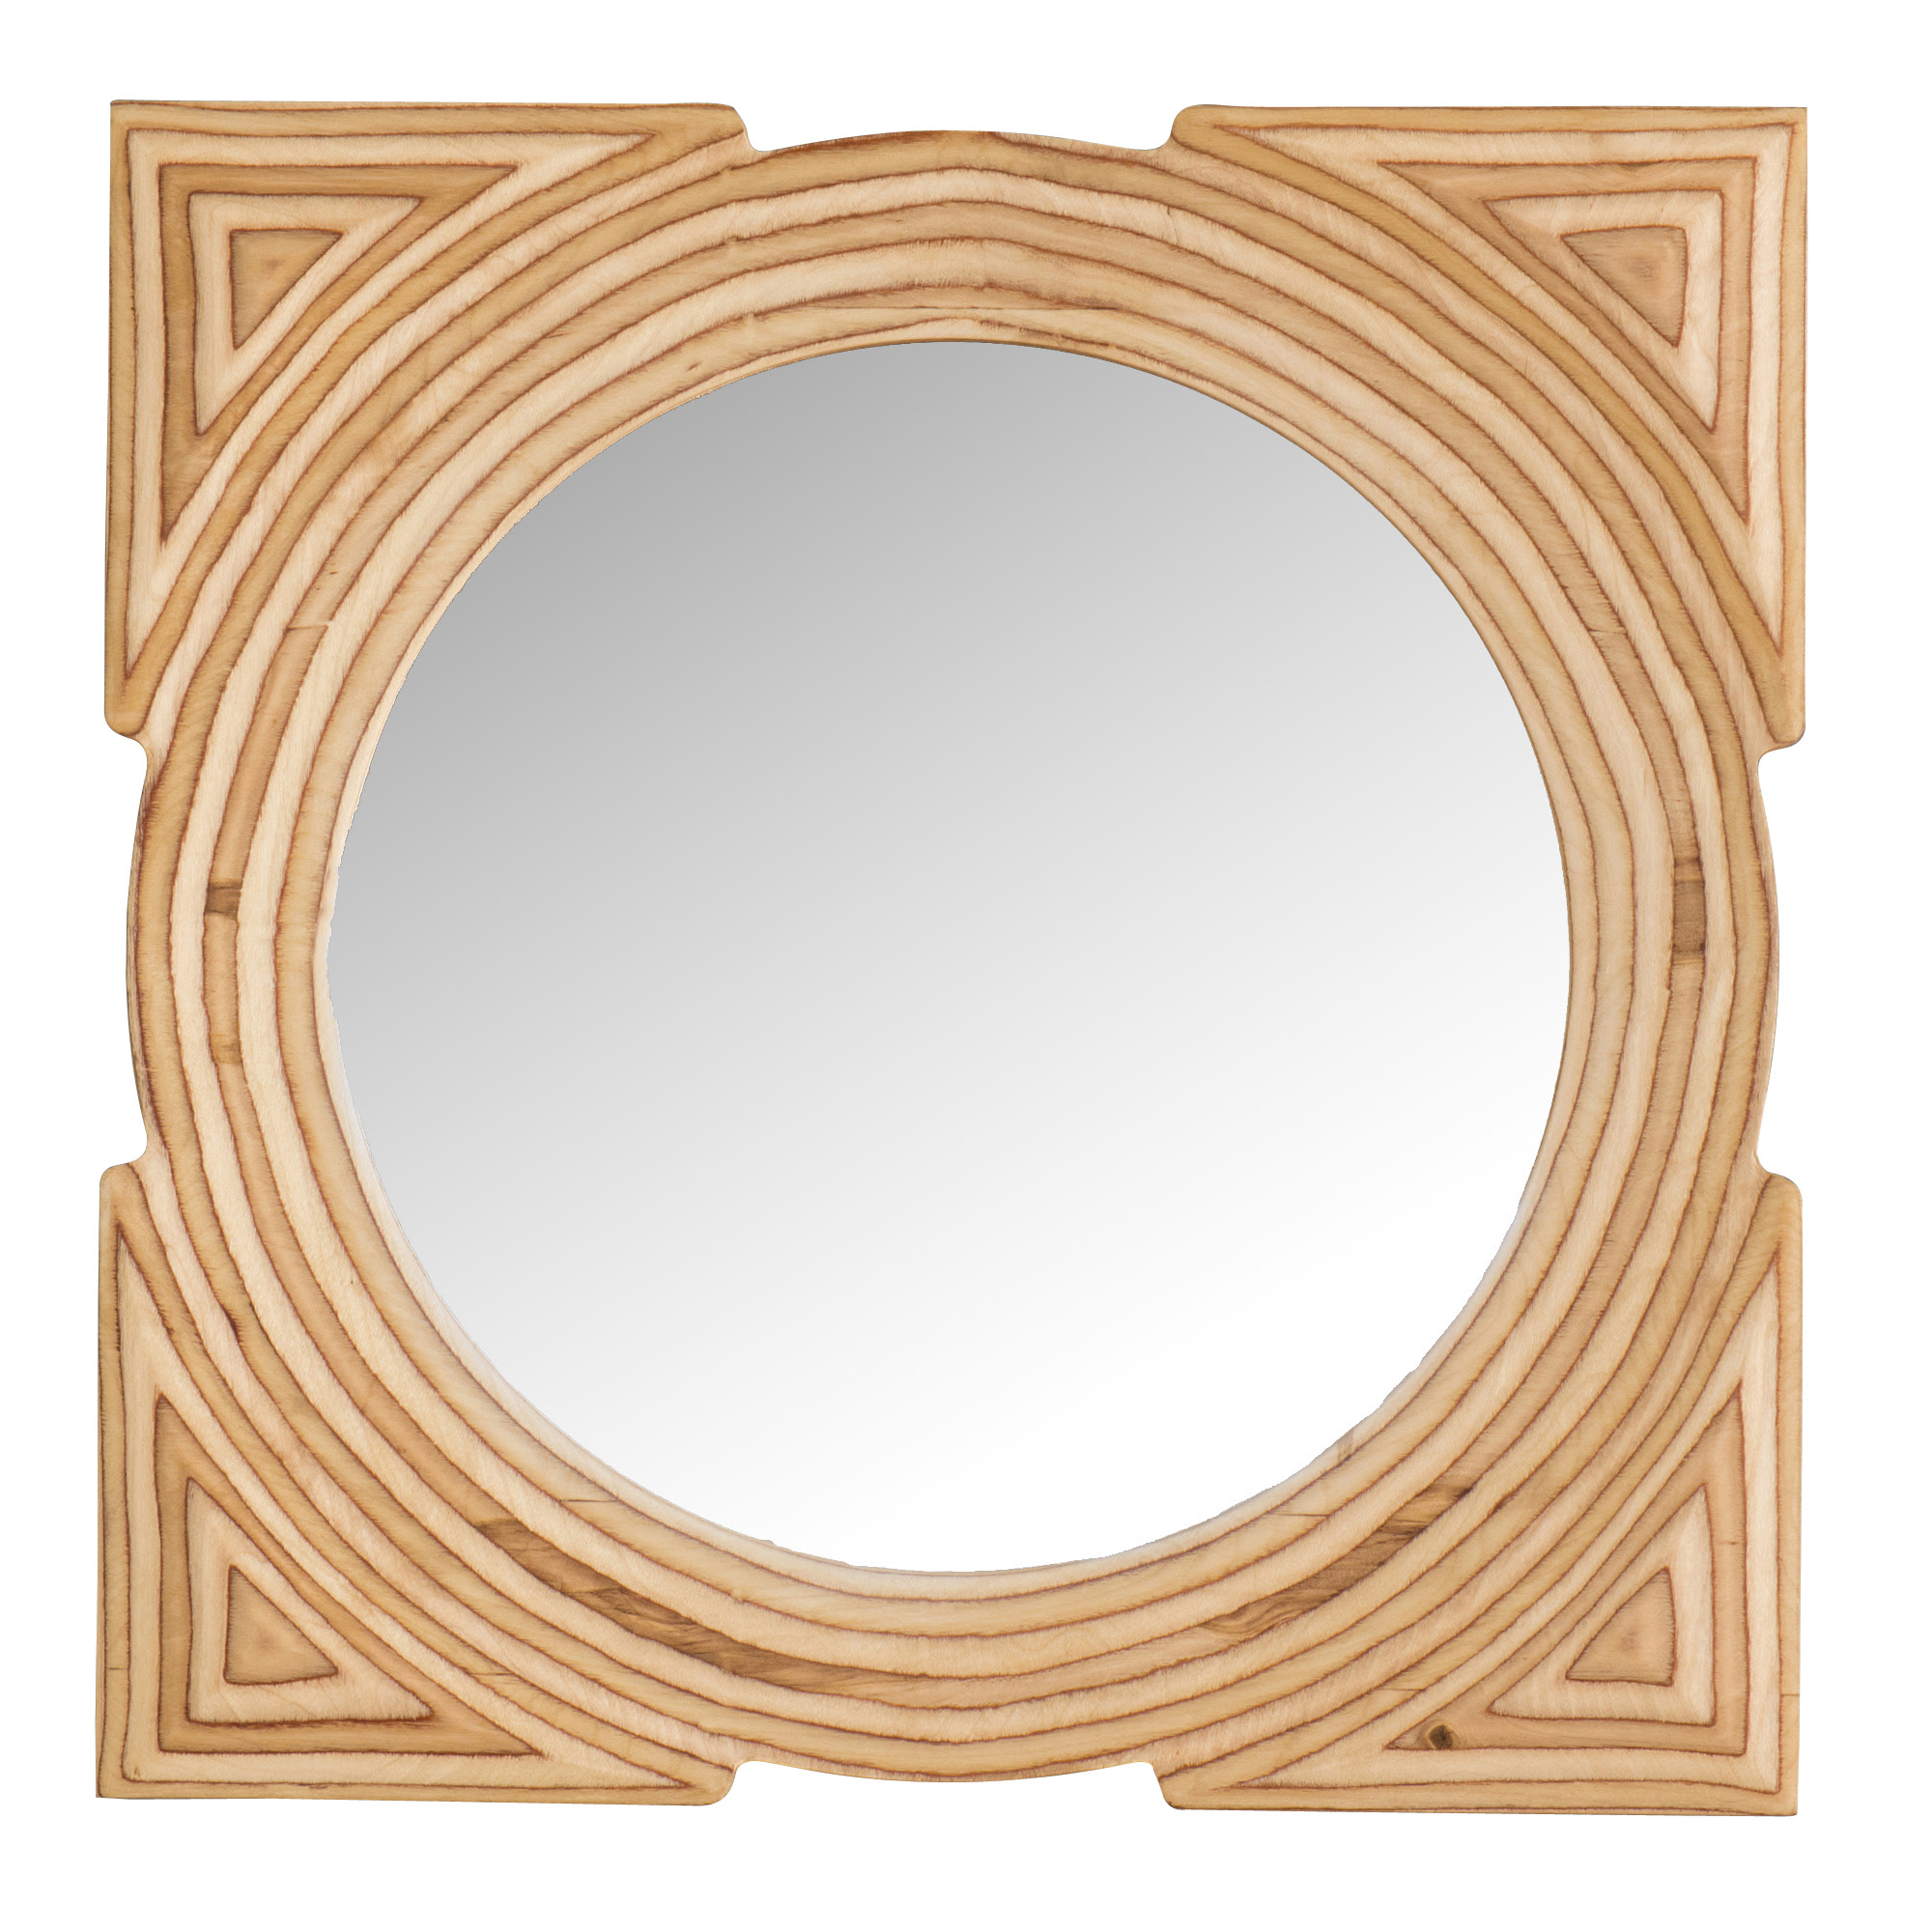 Coastal chic mirrors with decorative mirrors online for Decor mirror